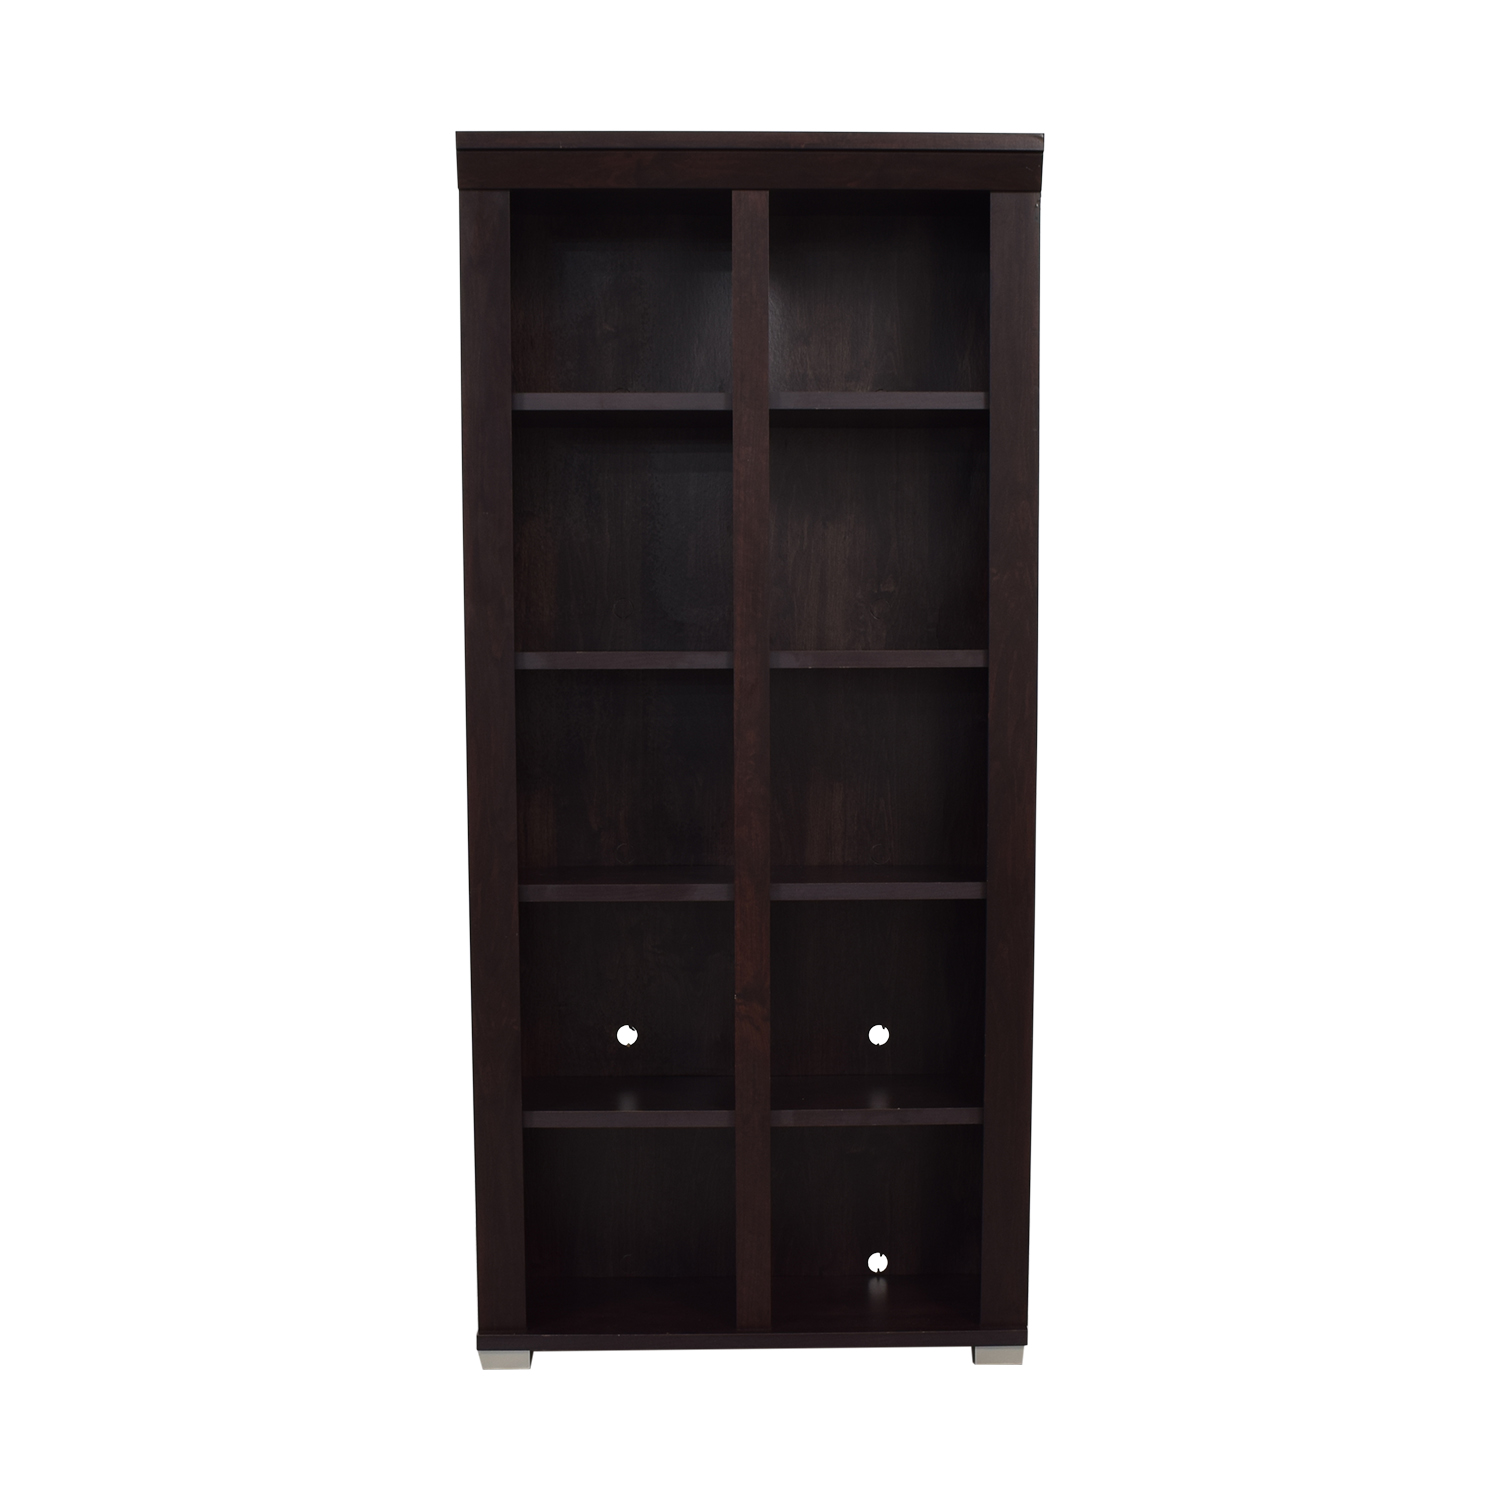 Crate & Barrel Crate & Barrel Book Case discount